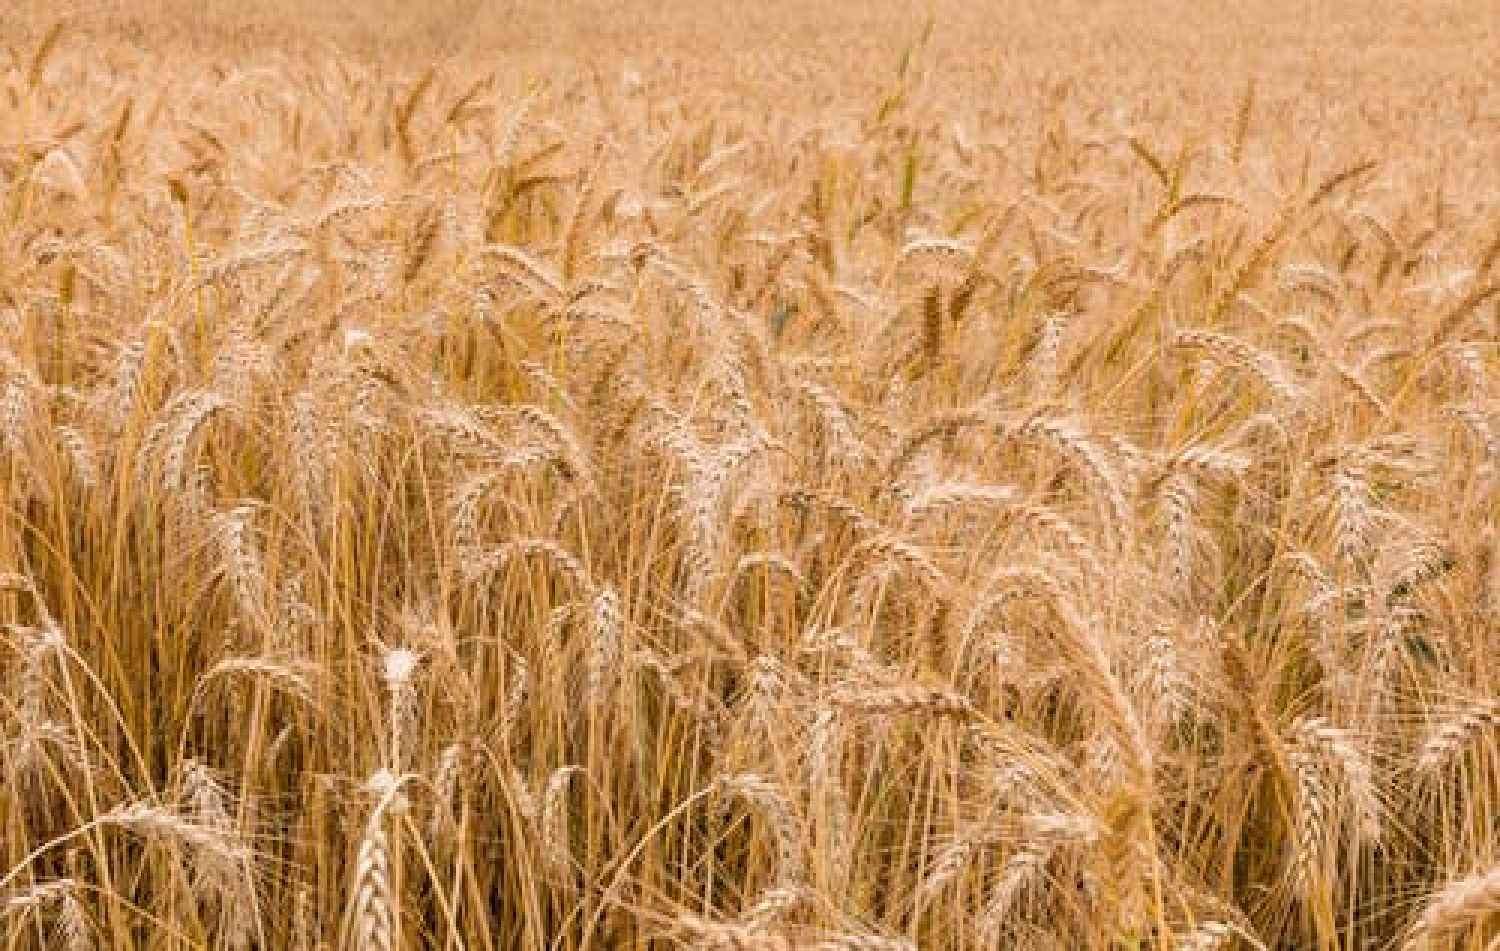 8 signs that you are gluten intolerant